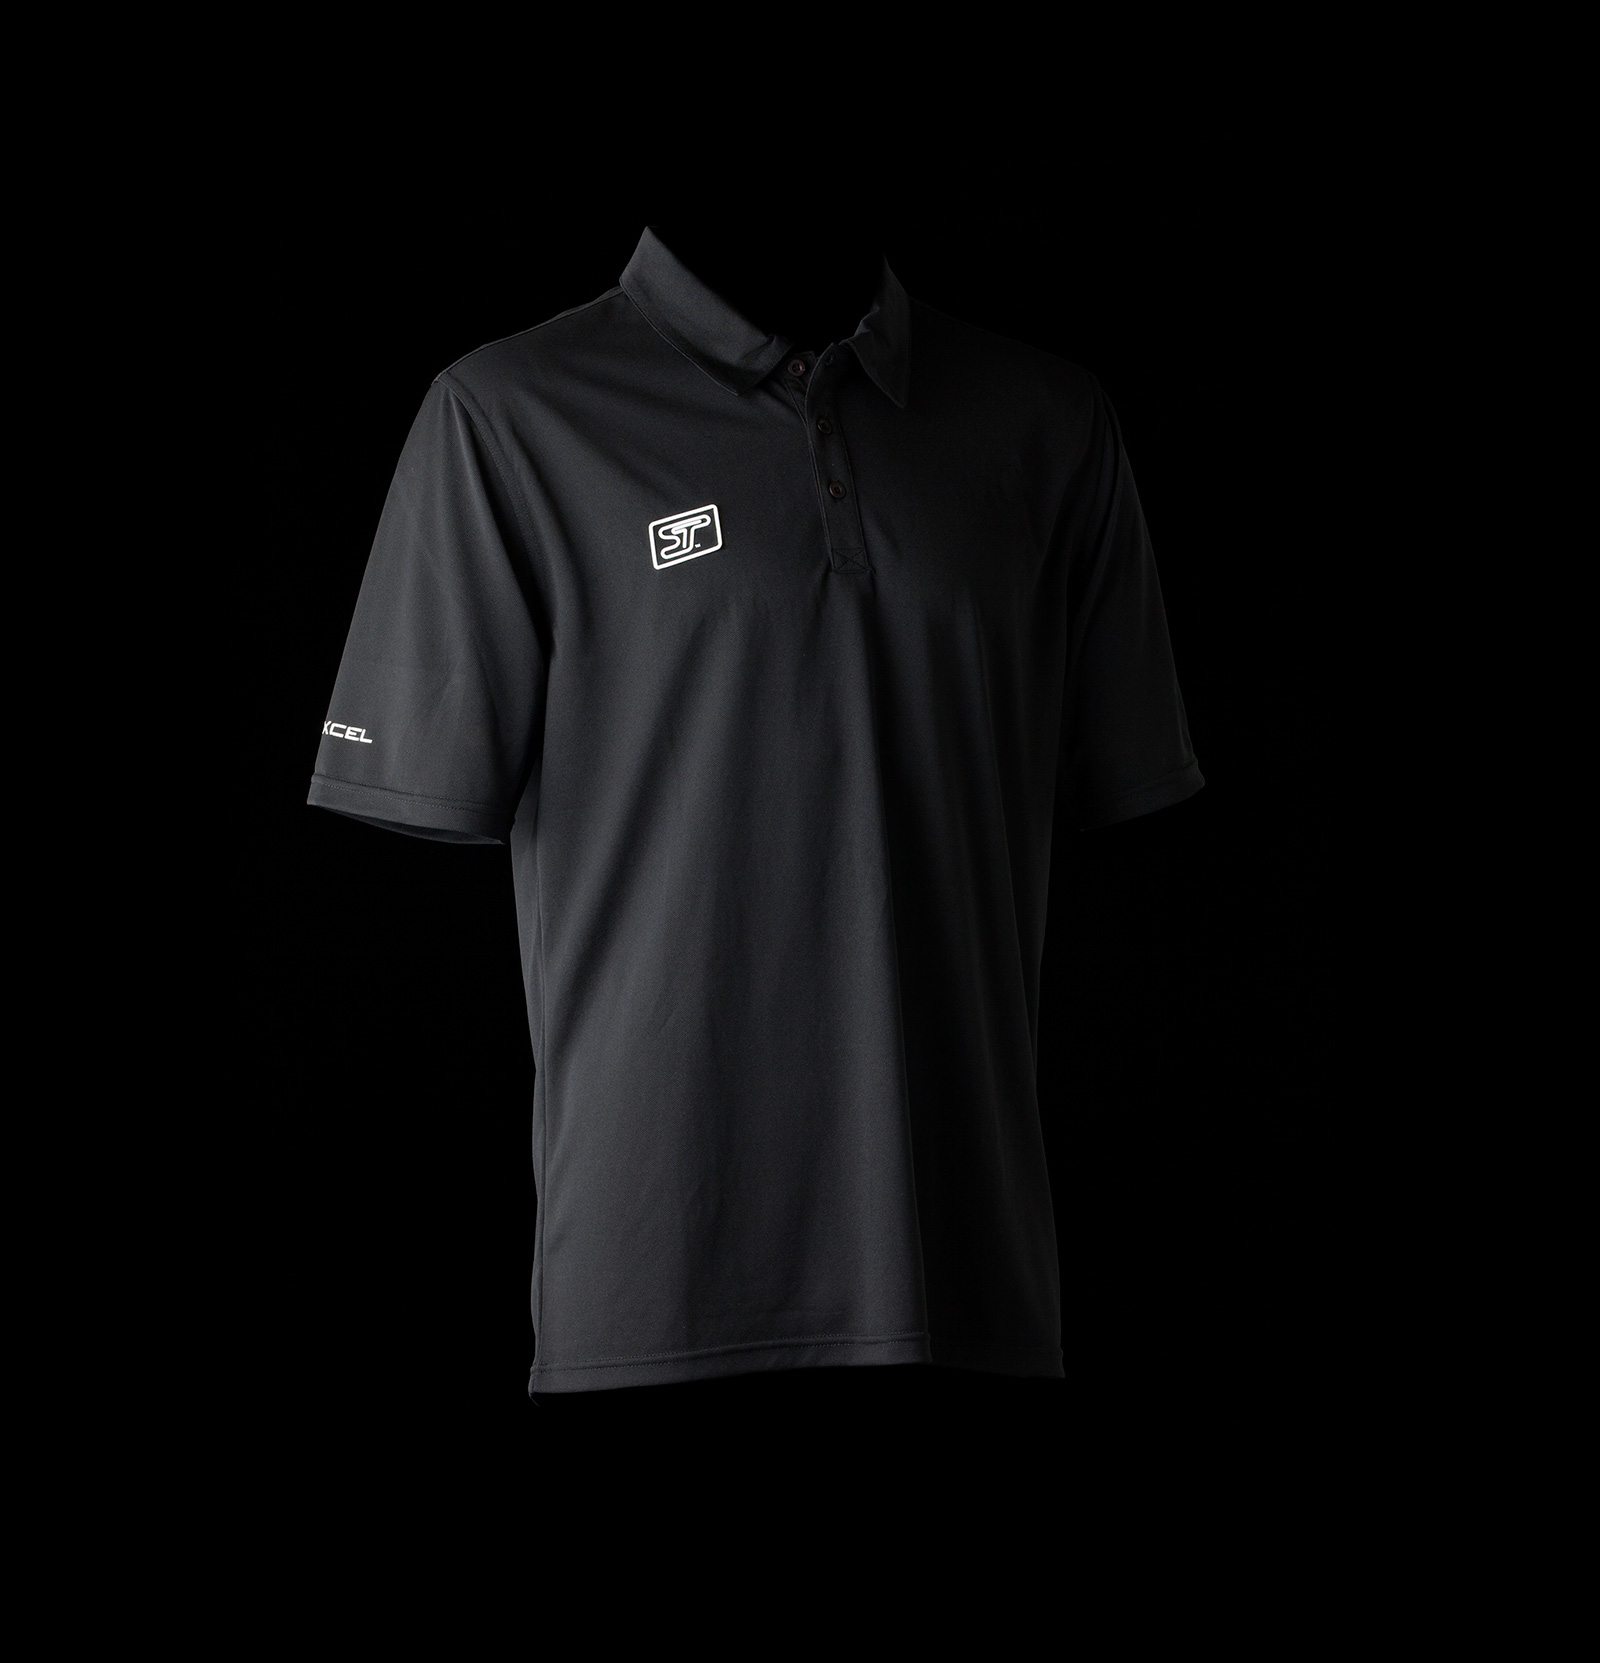 Excel-Polo-Shirt-Promo-69